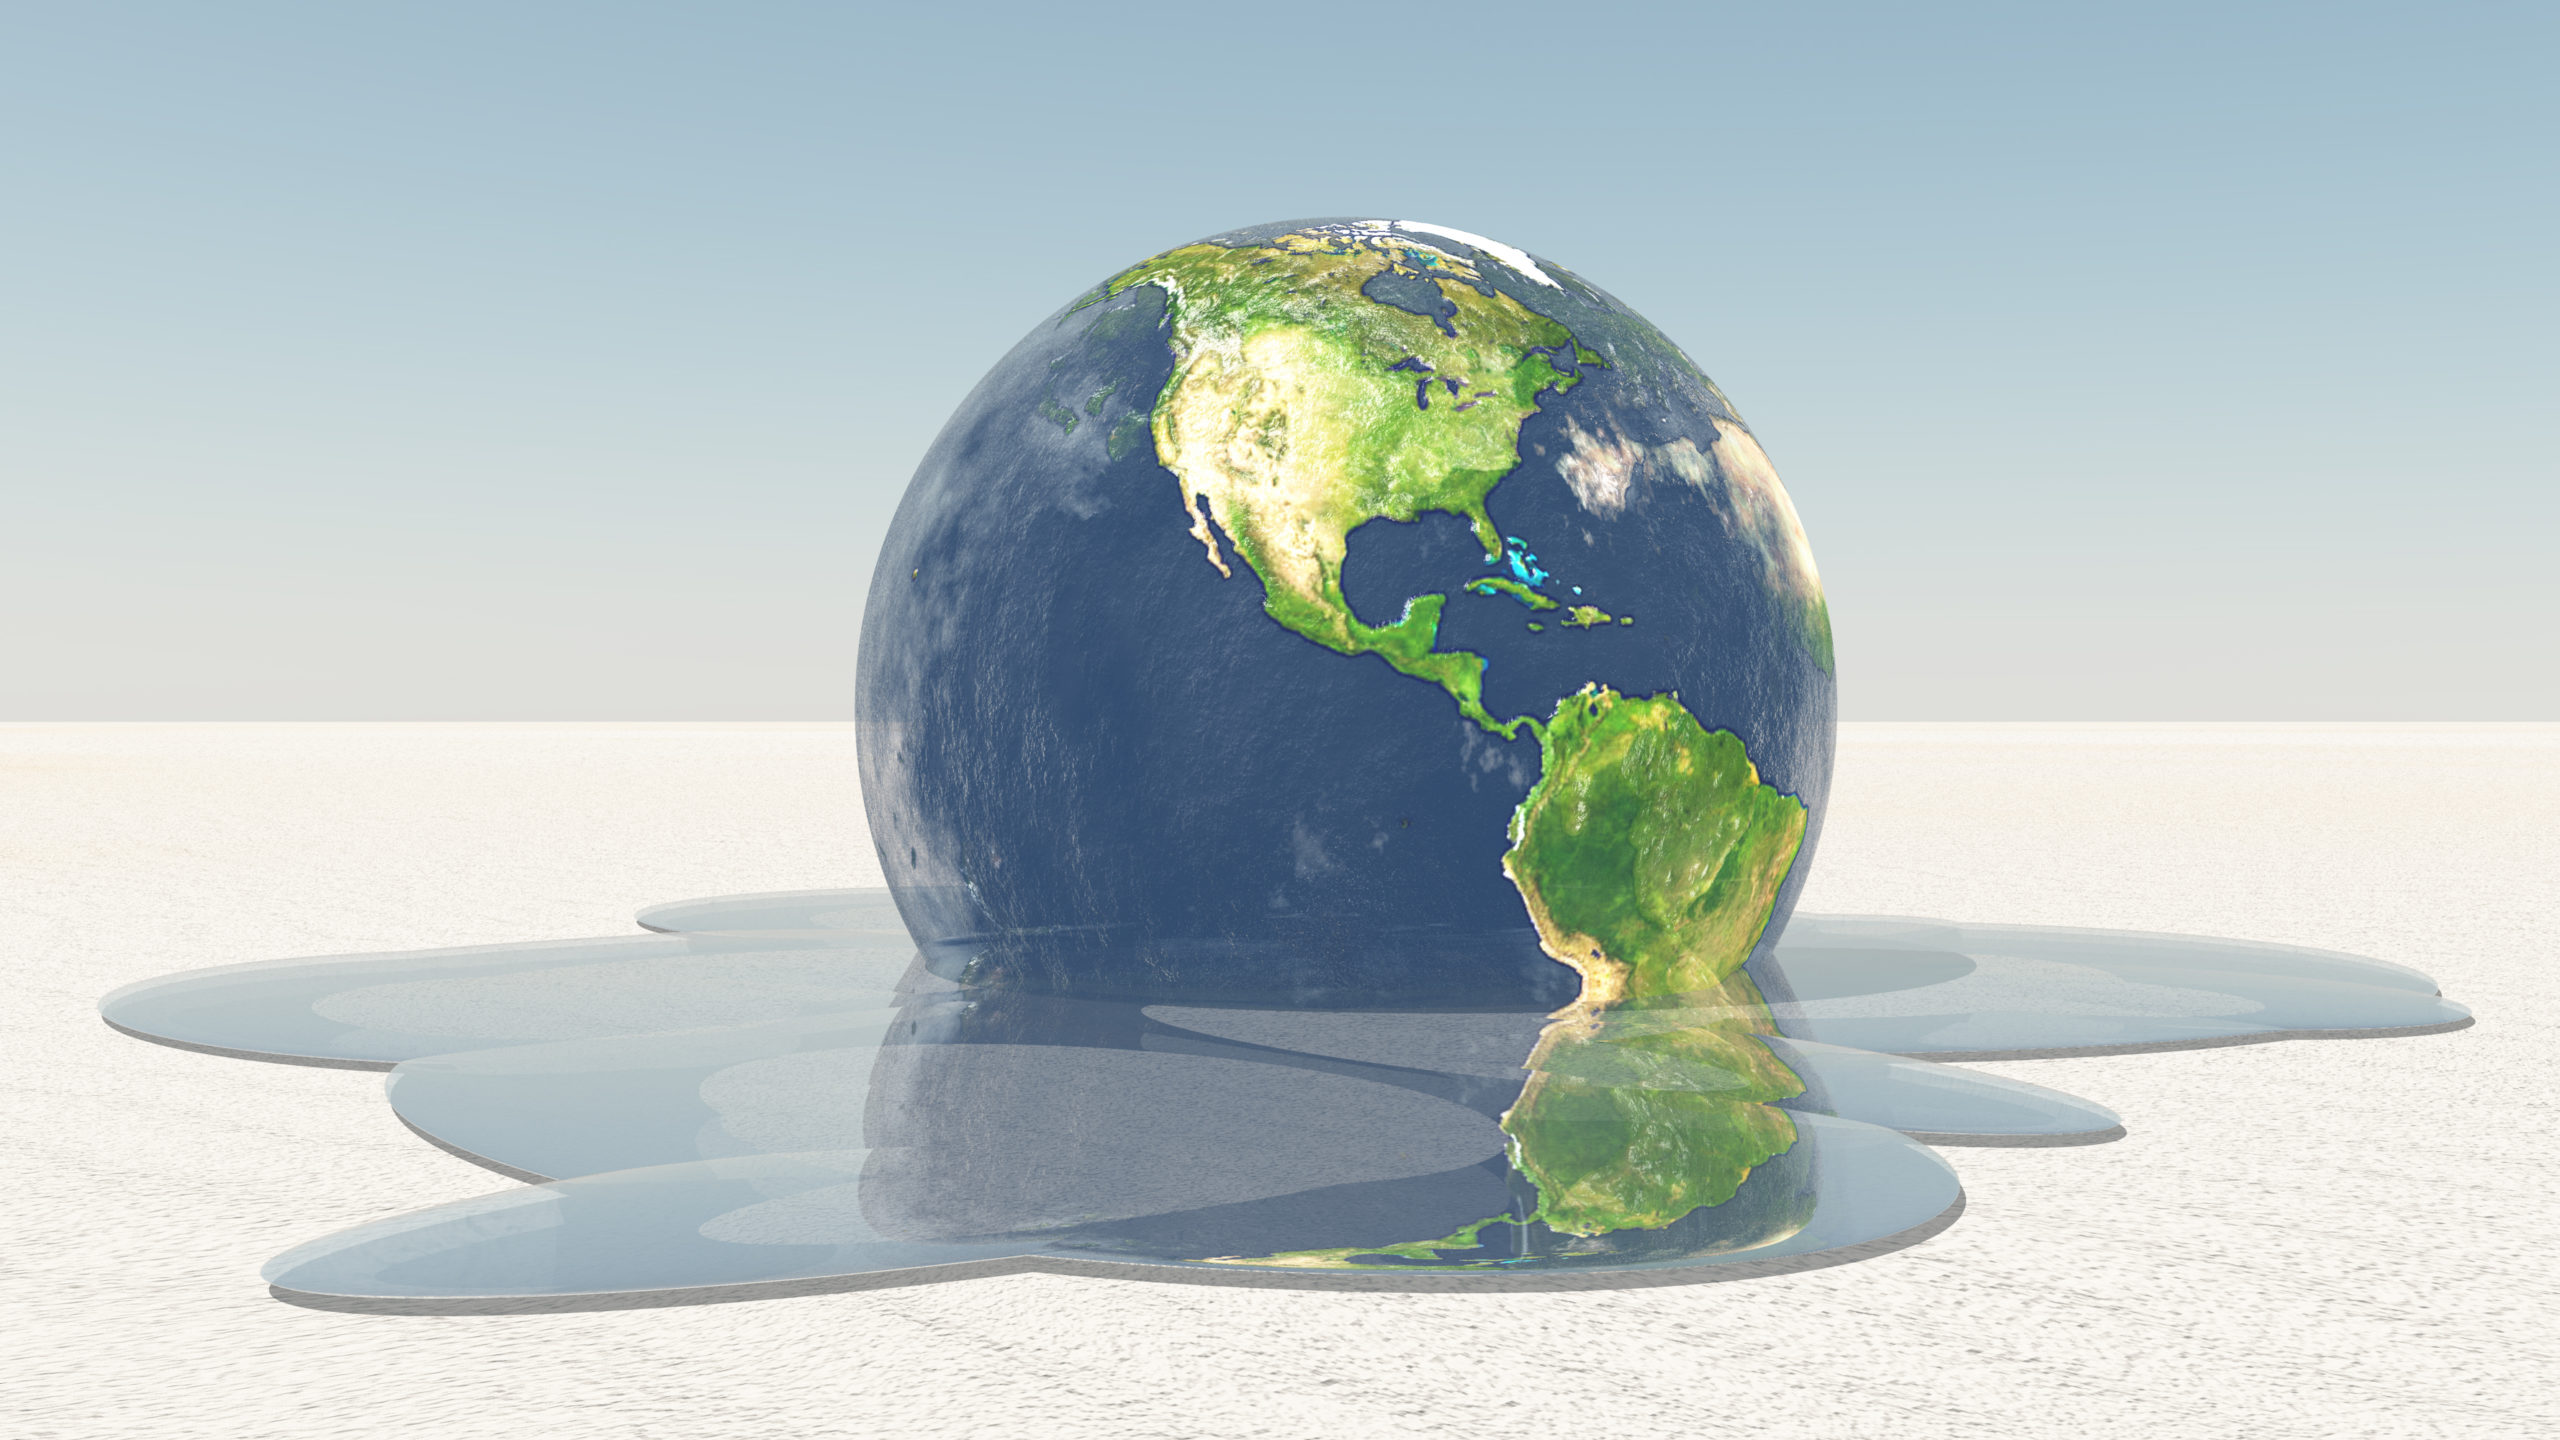 Earth,Melting,Into,Water,On,White,Surface